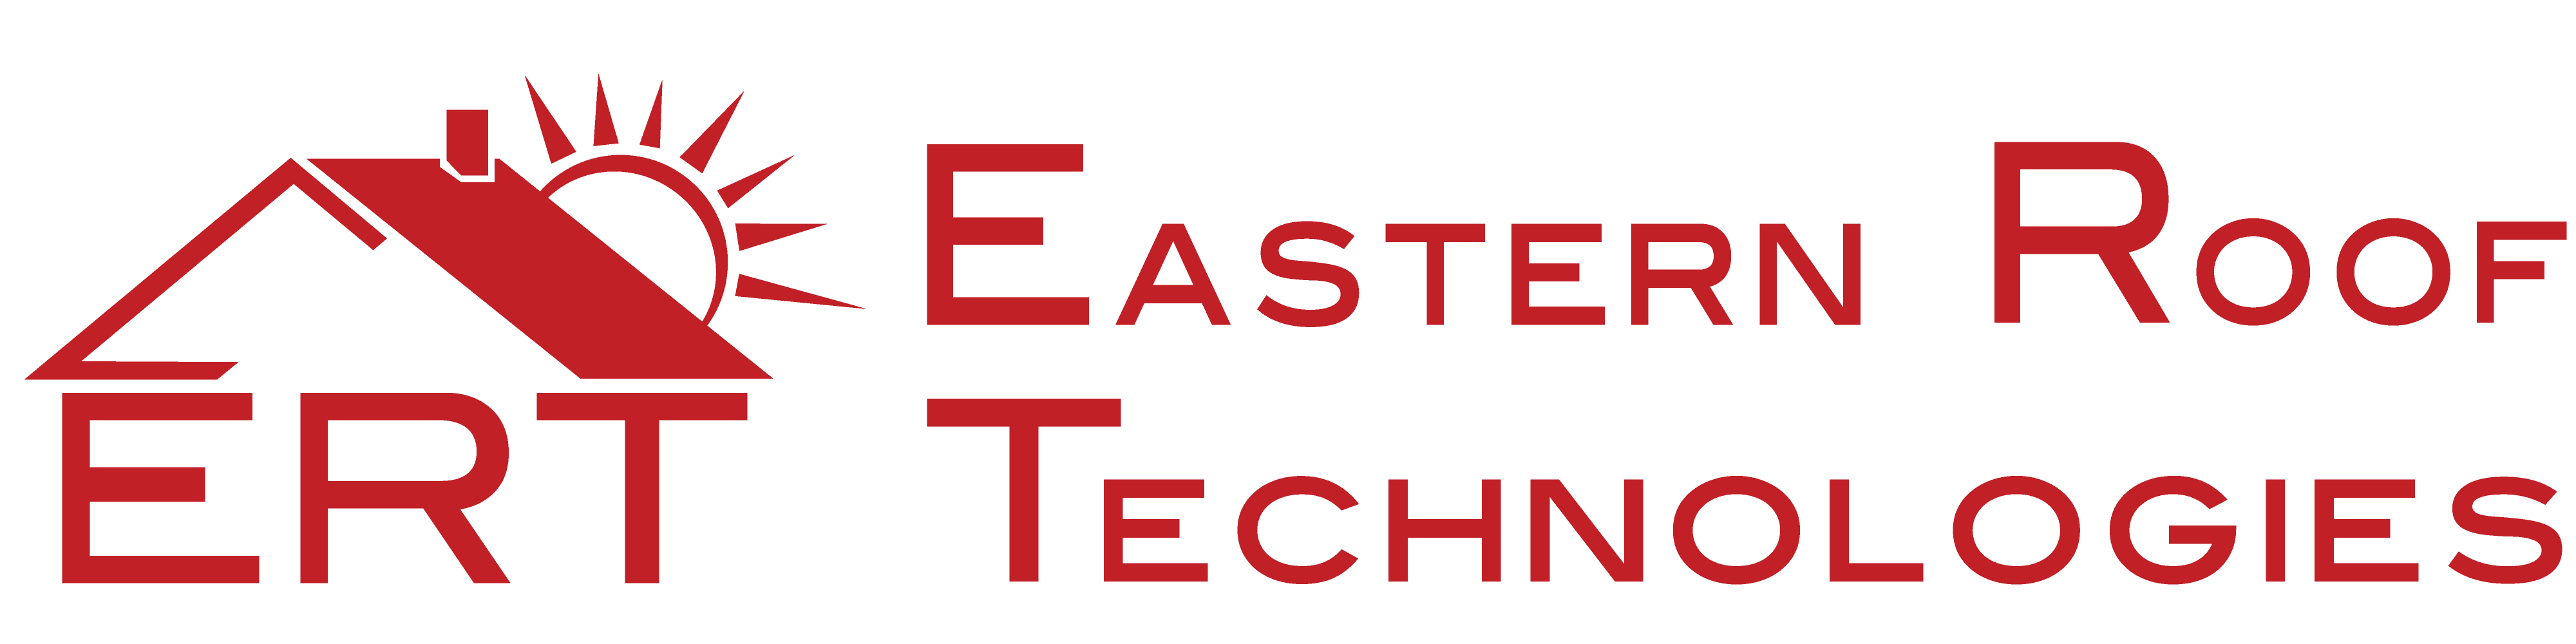 Eastern Roof Technologies